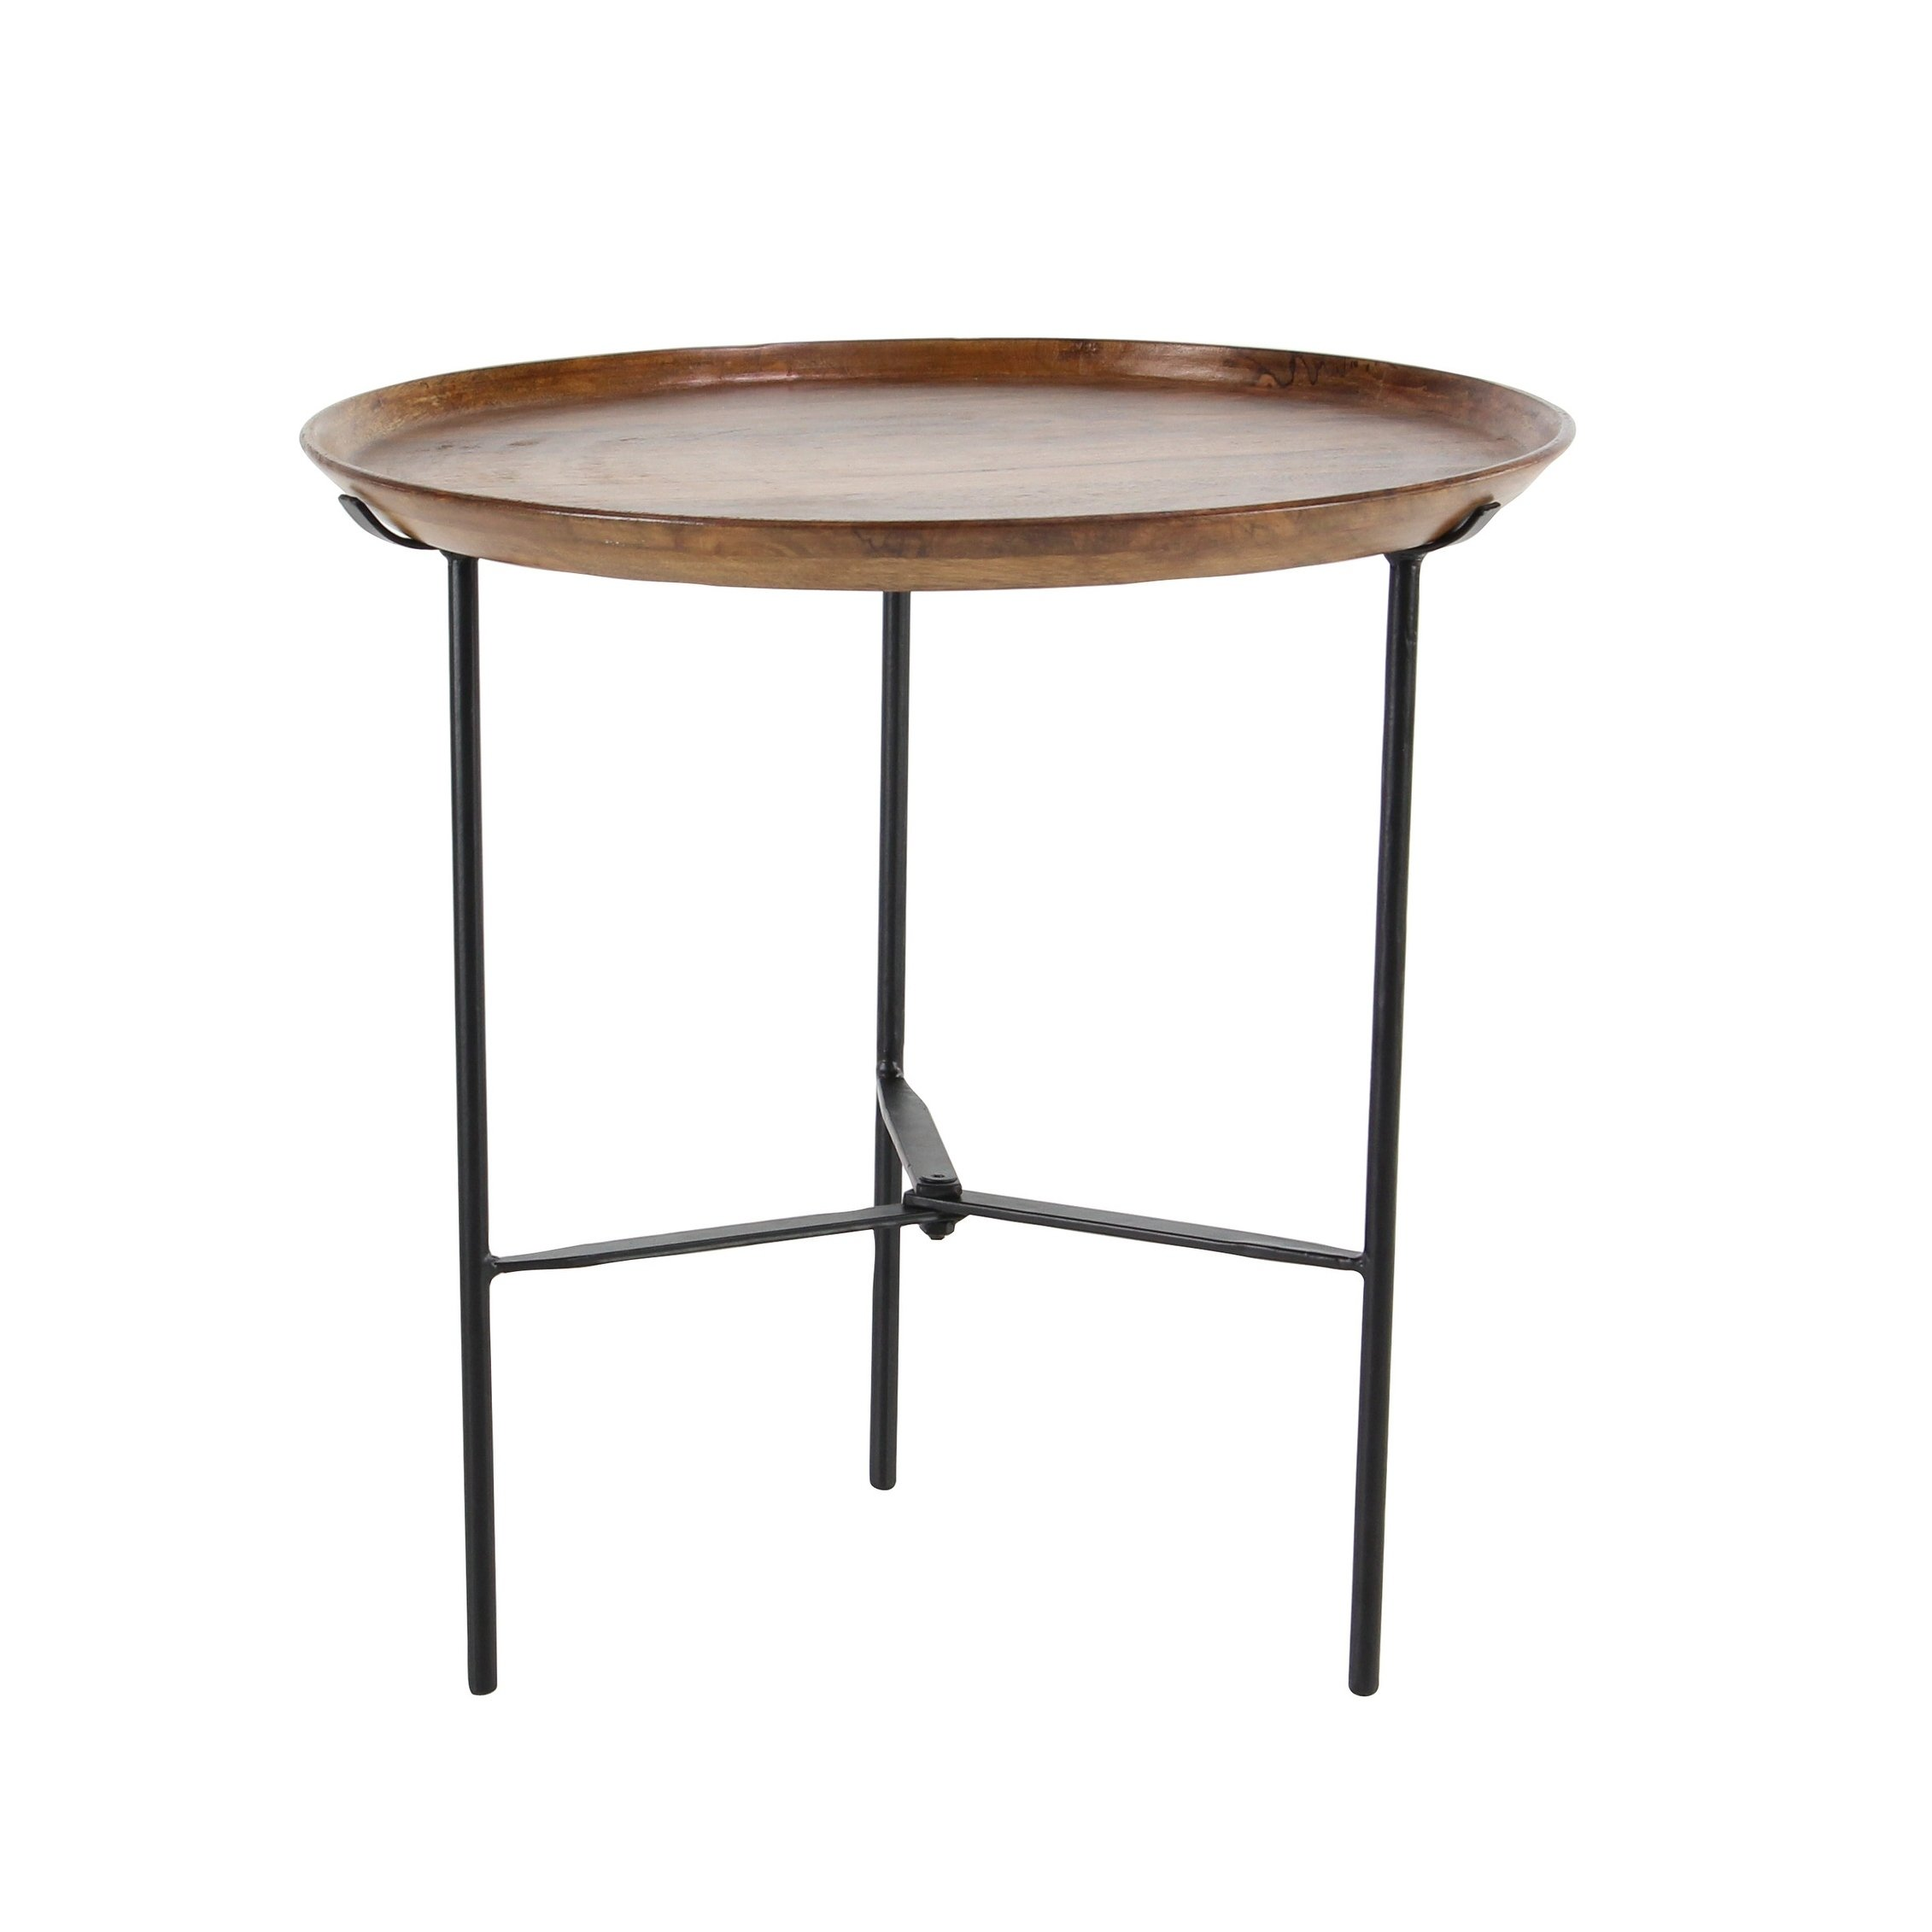 rustic inch round wood and iron accent table metal free shipping today pier imports coupon off total entire purchase wine rack furniture fur blanket target rectangle glass coffee